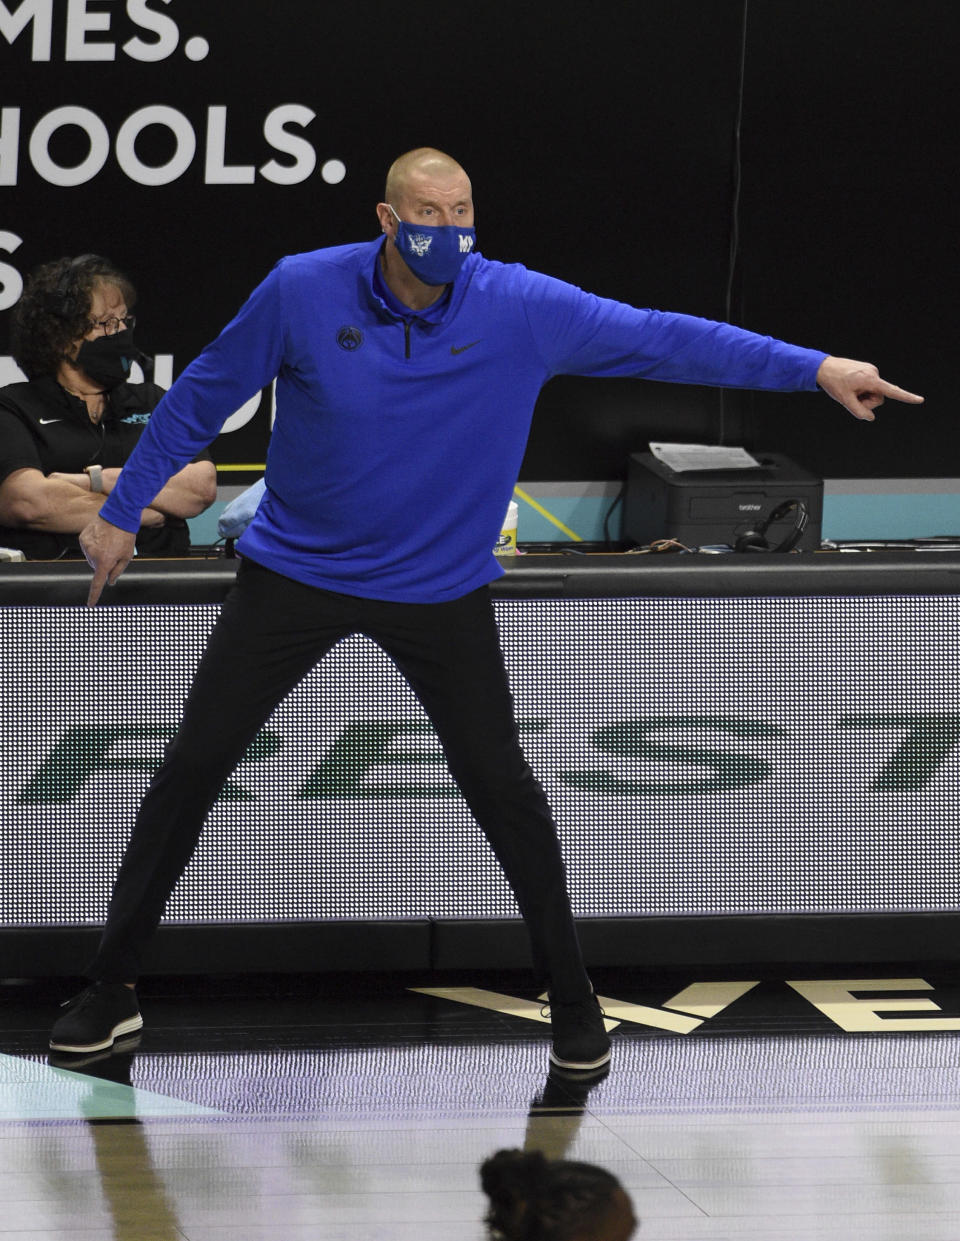 BYU coach Mark Pope calls to the team during the first half of NCAA college basketball game against Gonzaga for the West Coast Conference men's tournament championship Tuesday, March 9, 2021, in Las Vegas. (AP Photo/David Becker)